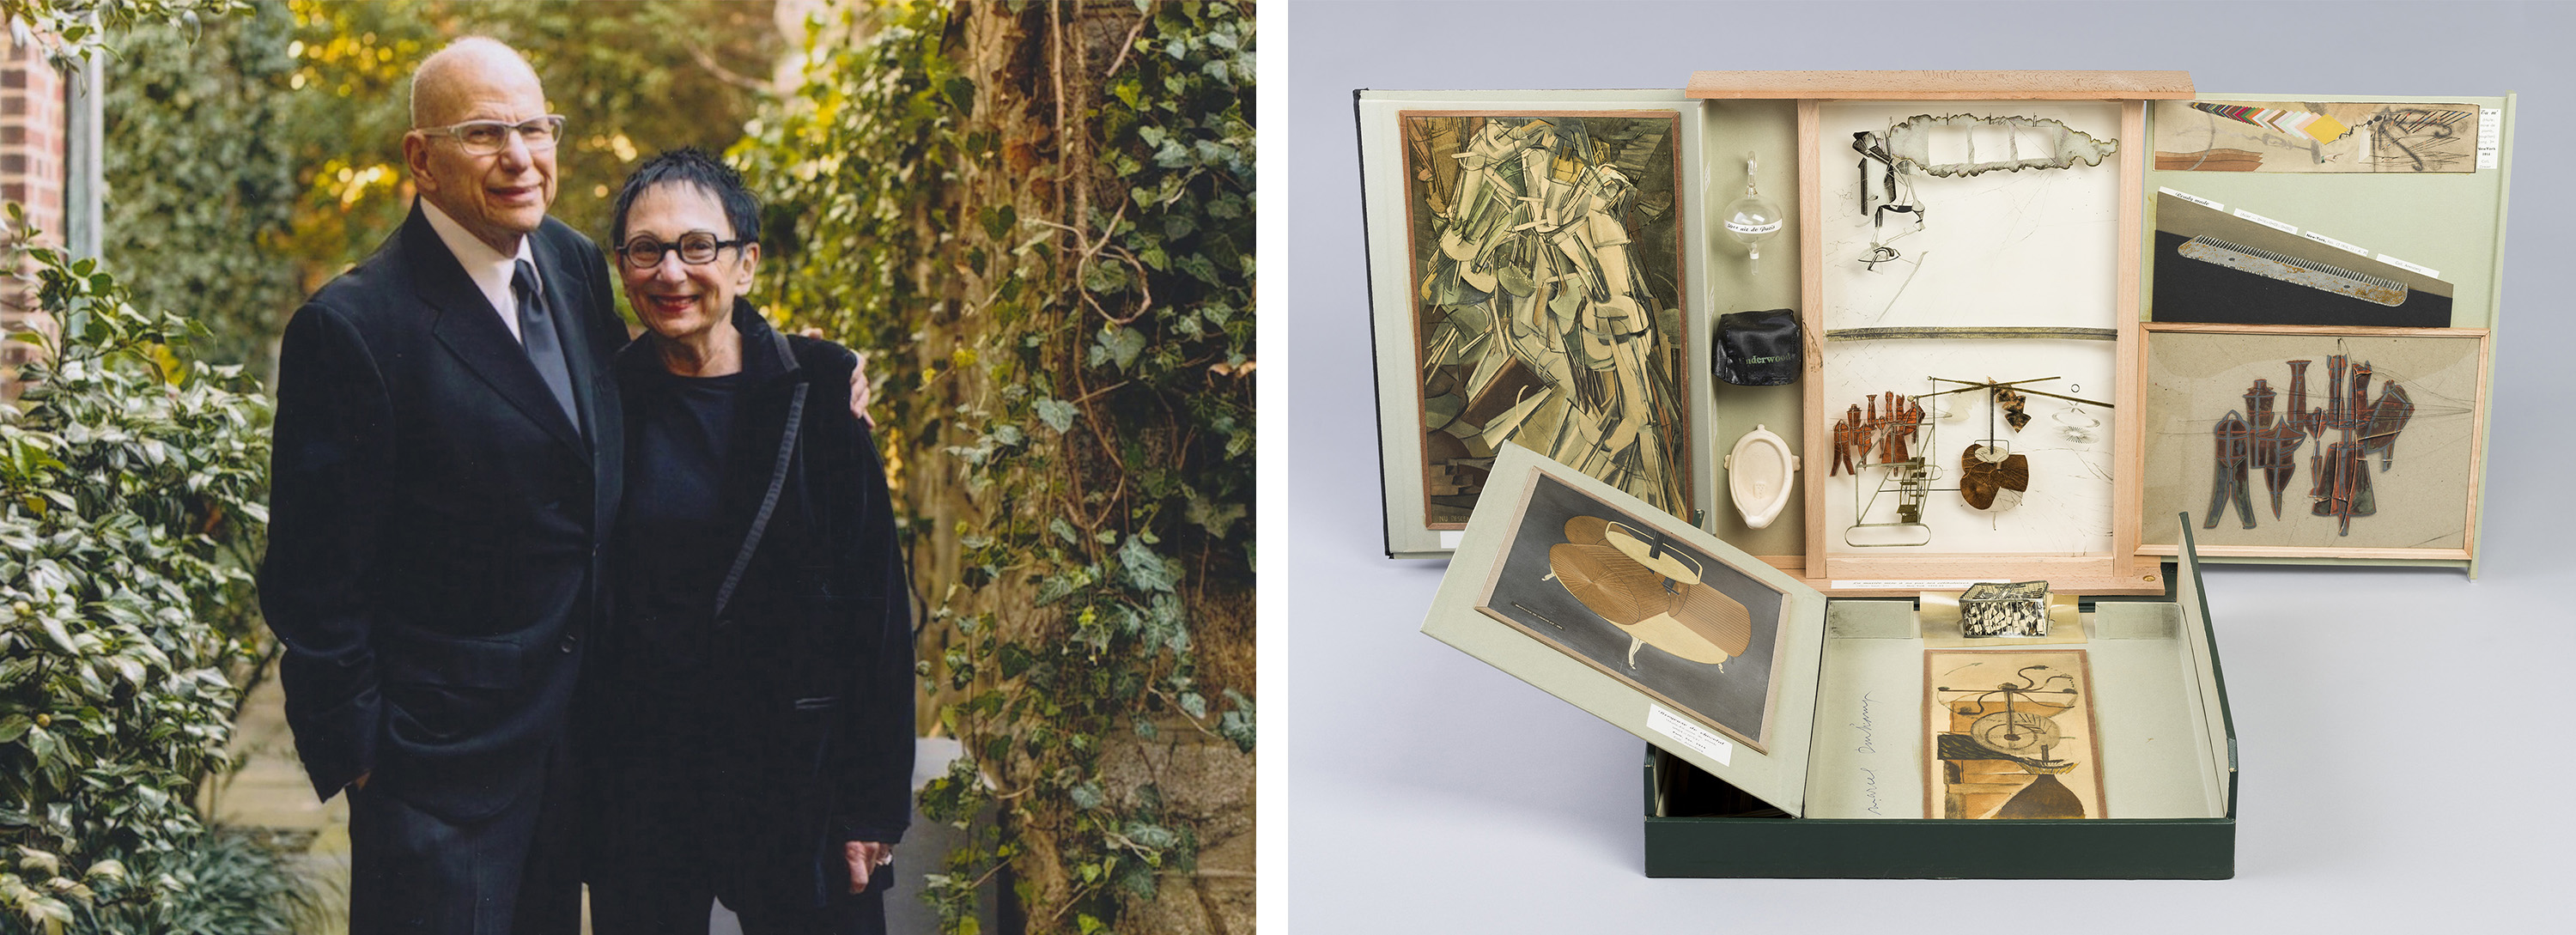 Left: Aaron and Barbara Levine. Photo by Eli Meir Kaplan. Right: Marcel Duchamp, The Box in a Valise/Boite en Valise (Series E) From or by Marcel Duchamp or Rrose Selavy, 1963. Cincinnati Art Museum, Ohio, USA. Duchamp / Bridgeman Images. Association Marcel Duchamp / ADAGP, Paris / Artists Rights Society (ARS), New York 2018